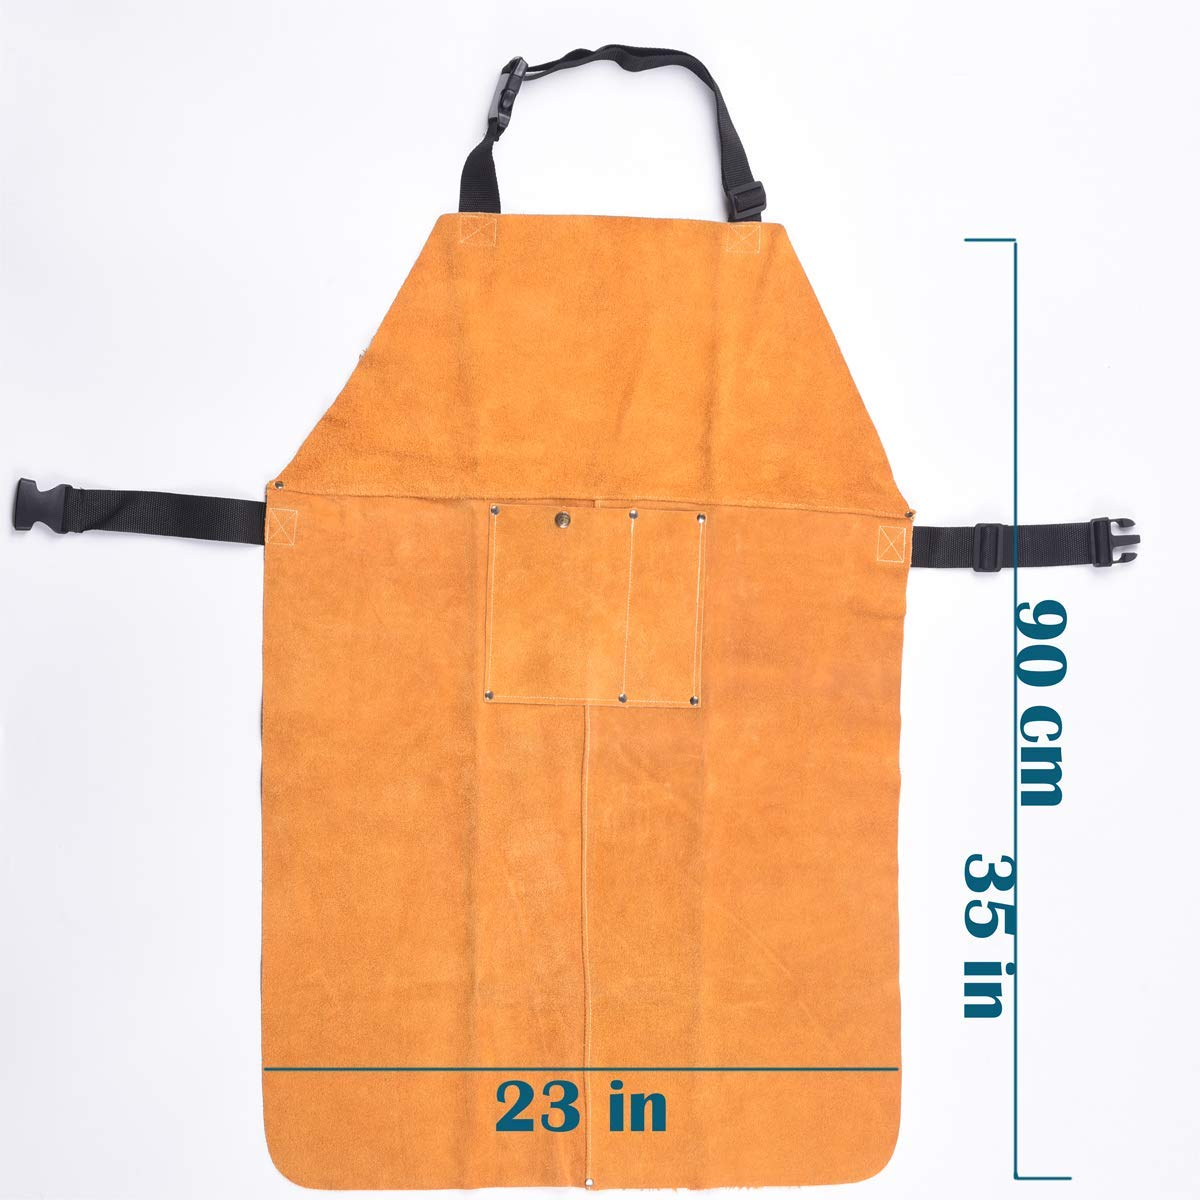 Protective Clothing or Safety Apparel for Blacksmith,Woodwork//Home Improvement//Heavy Duty Work,23x35inch Safety Shop Leather Welding Work Apron,Heat/&Flame Resistant